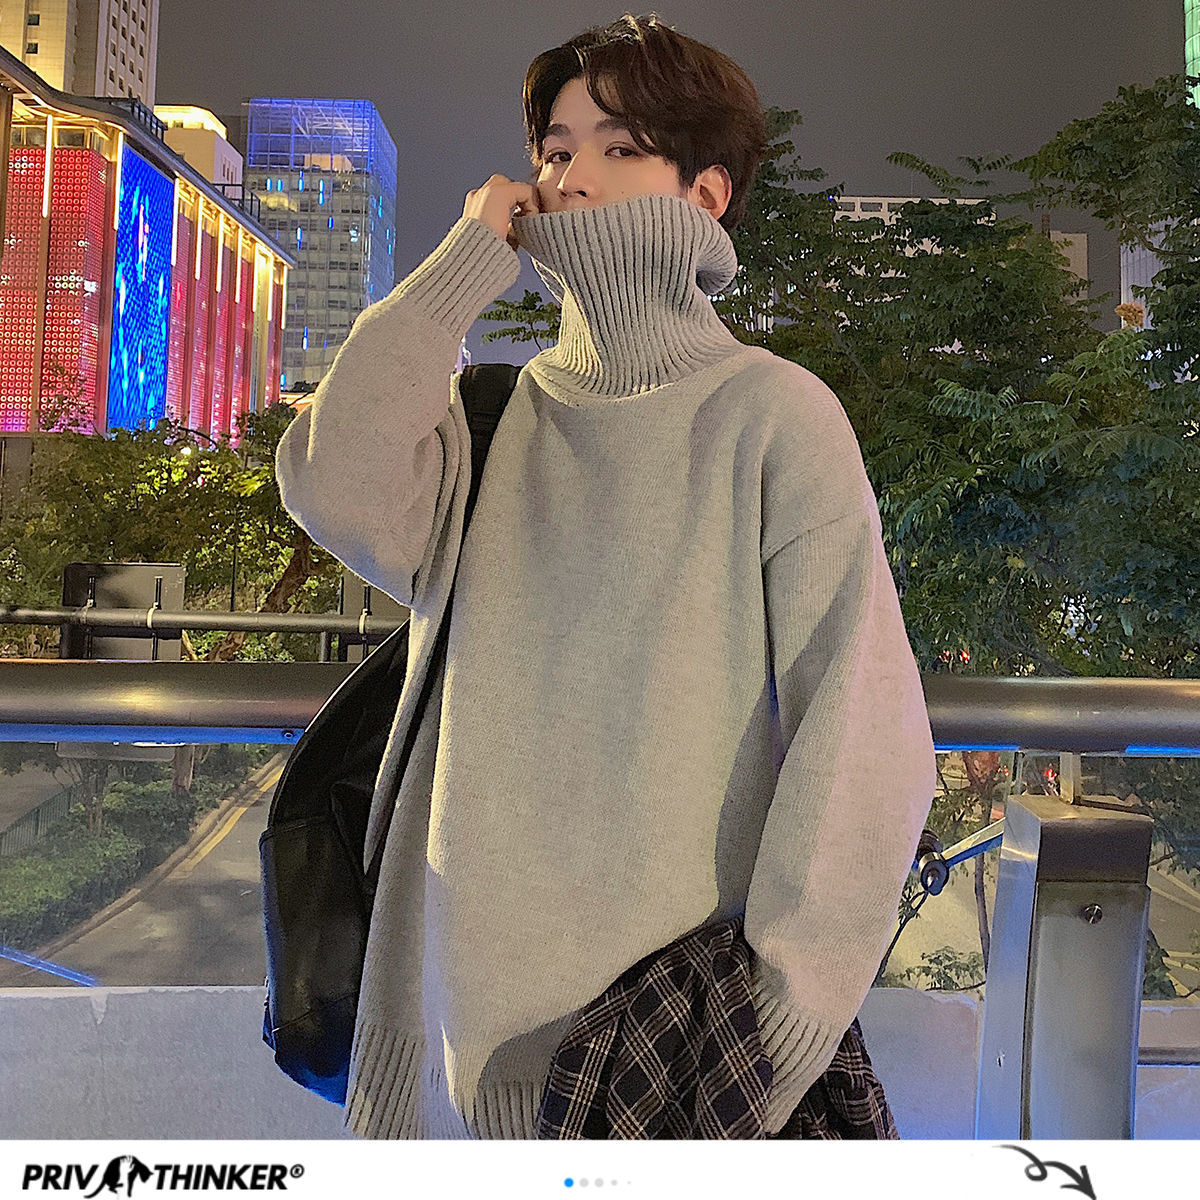 Privathinker Men's Turtleneck Sweaters 6 Solid Color Men Casual Long Sleeve Knitted Sweater 2020 Warm Tops Man Clothes XXXL